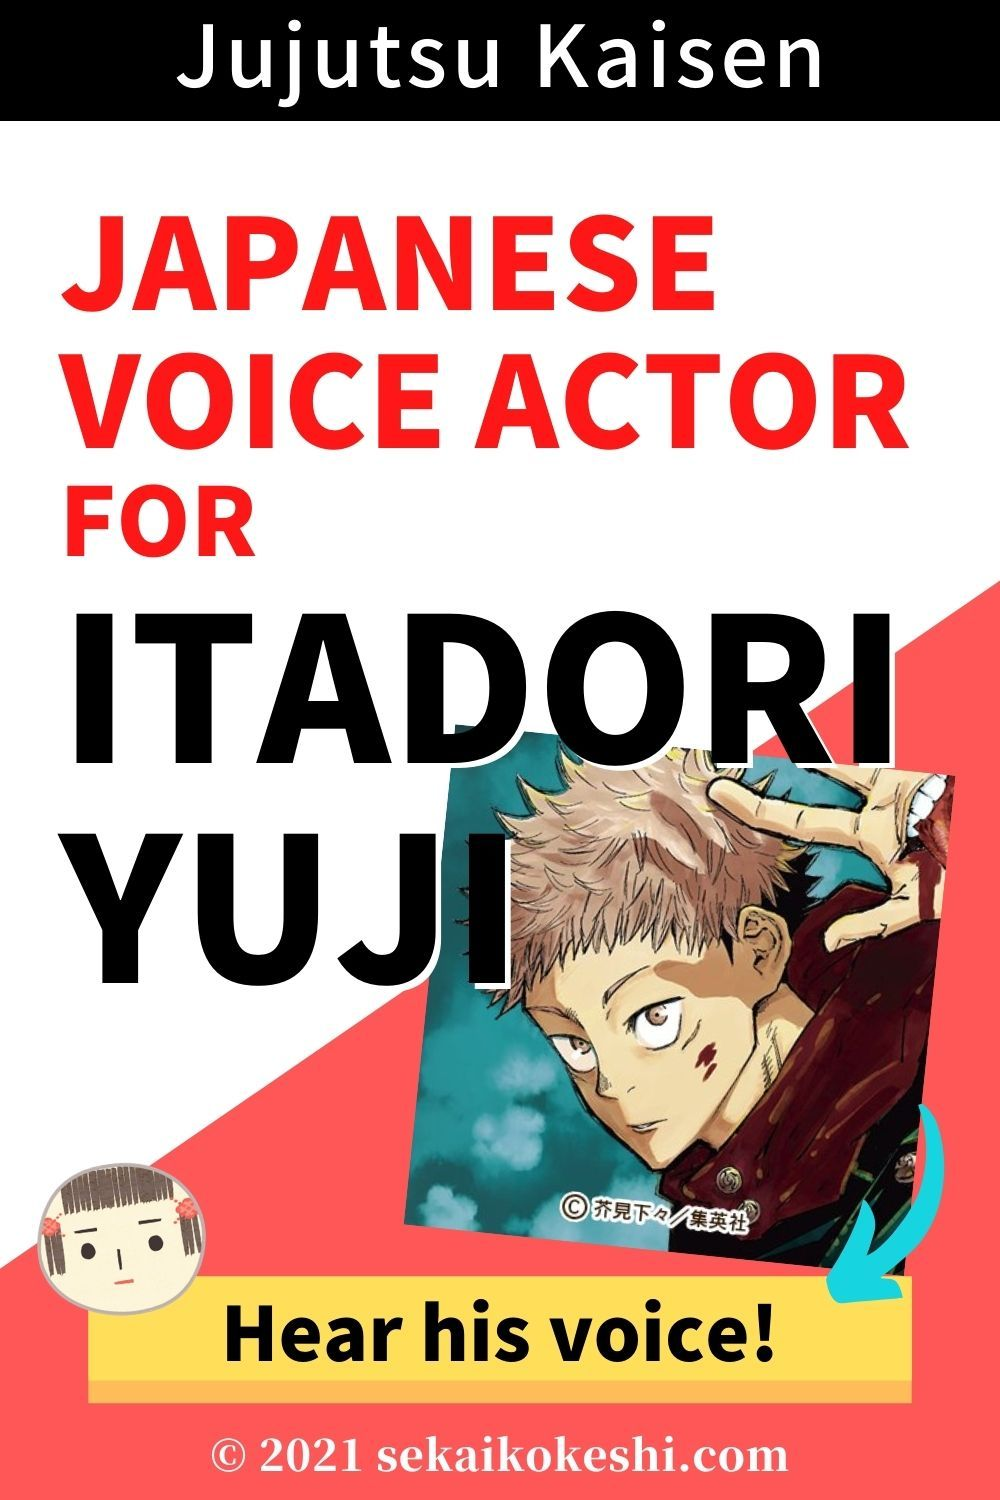 Who S The Japanese Voice Actor For Itadori Yuji In Jujutsu Kaisen Anime Click Here For The Voice In 2021 Voice Actor Jujutsu The Voice